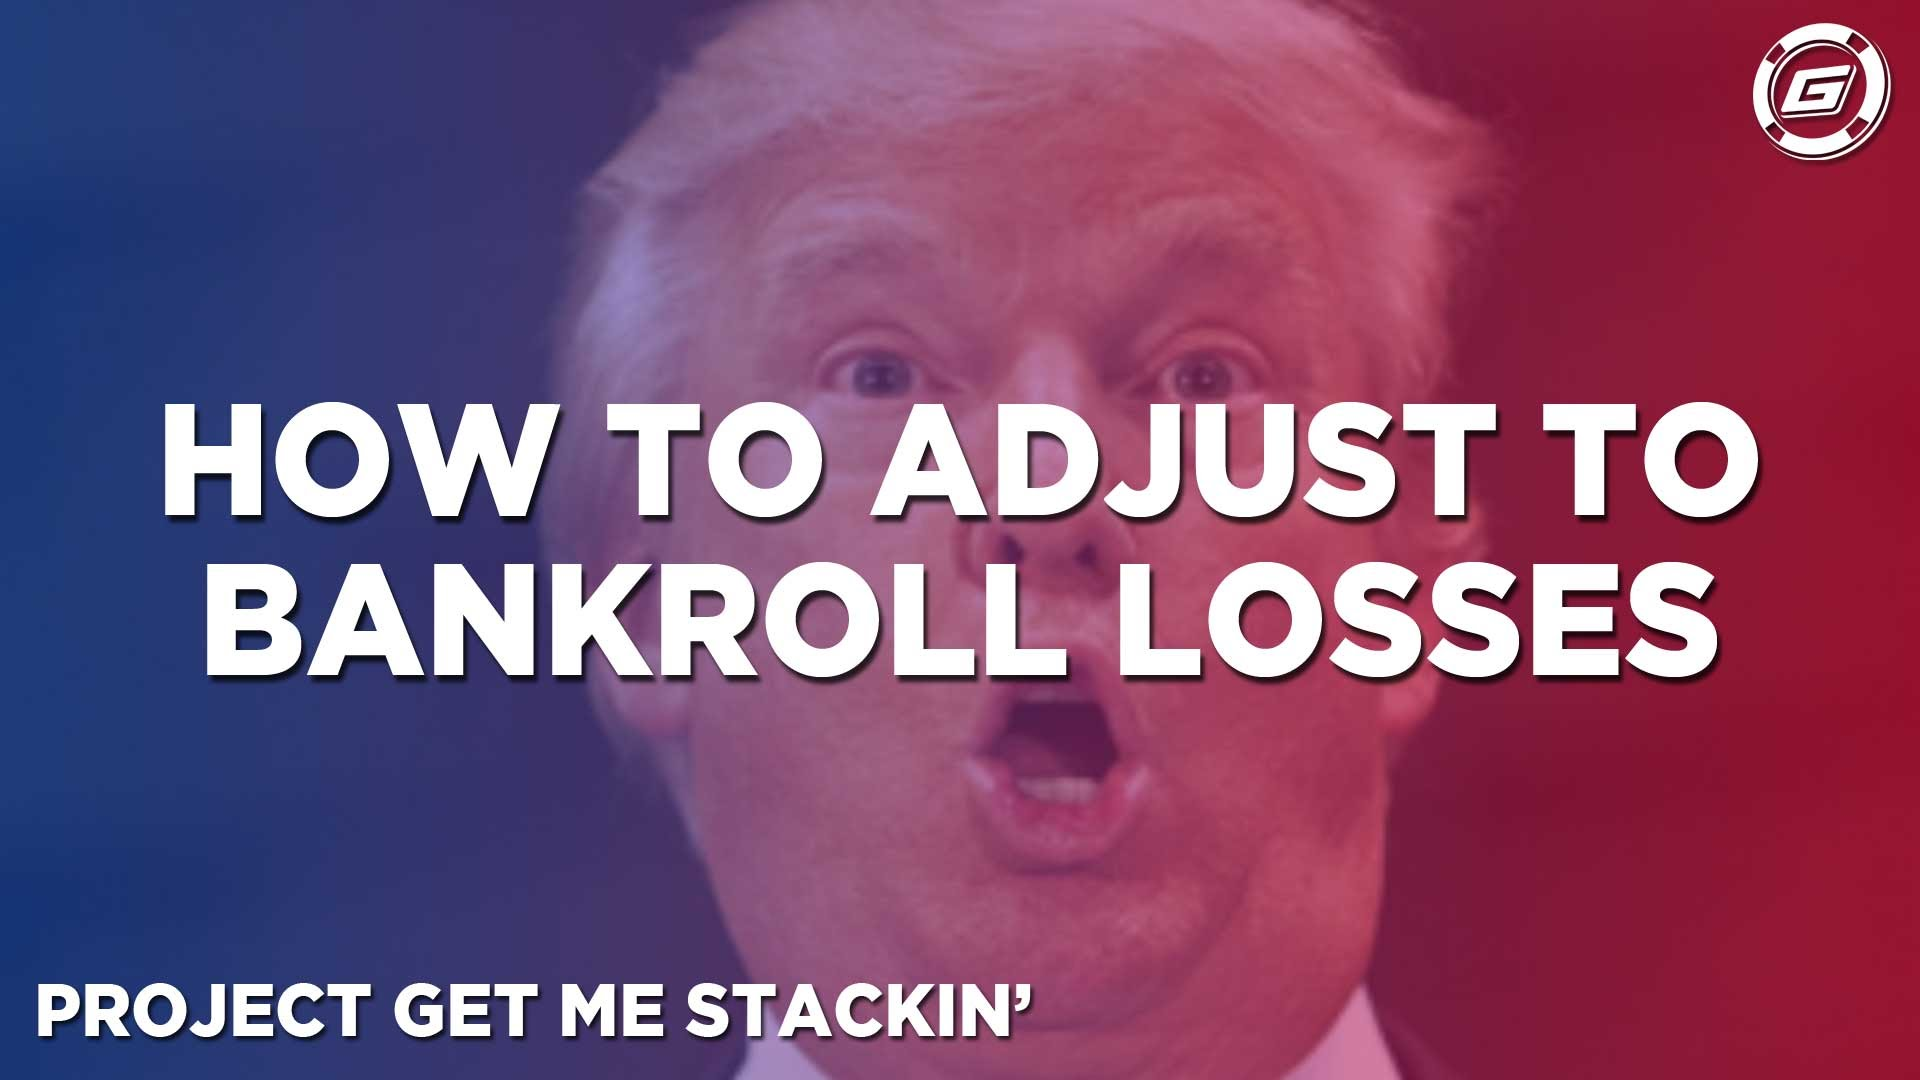 I Just Lost My Bankroll... Now What? - LESSON #9